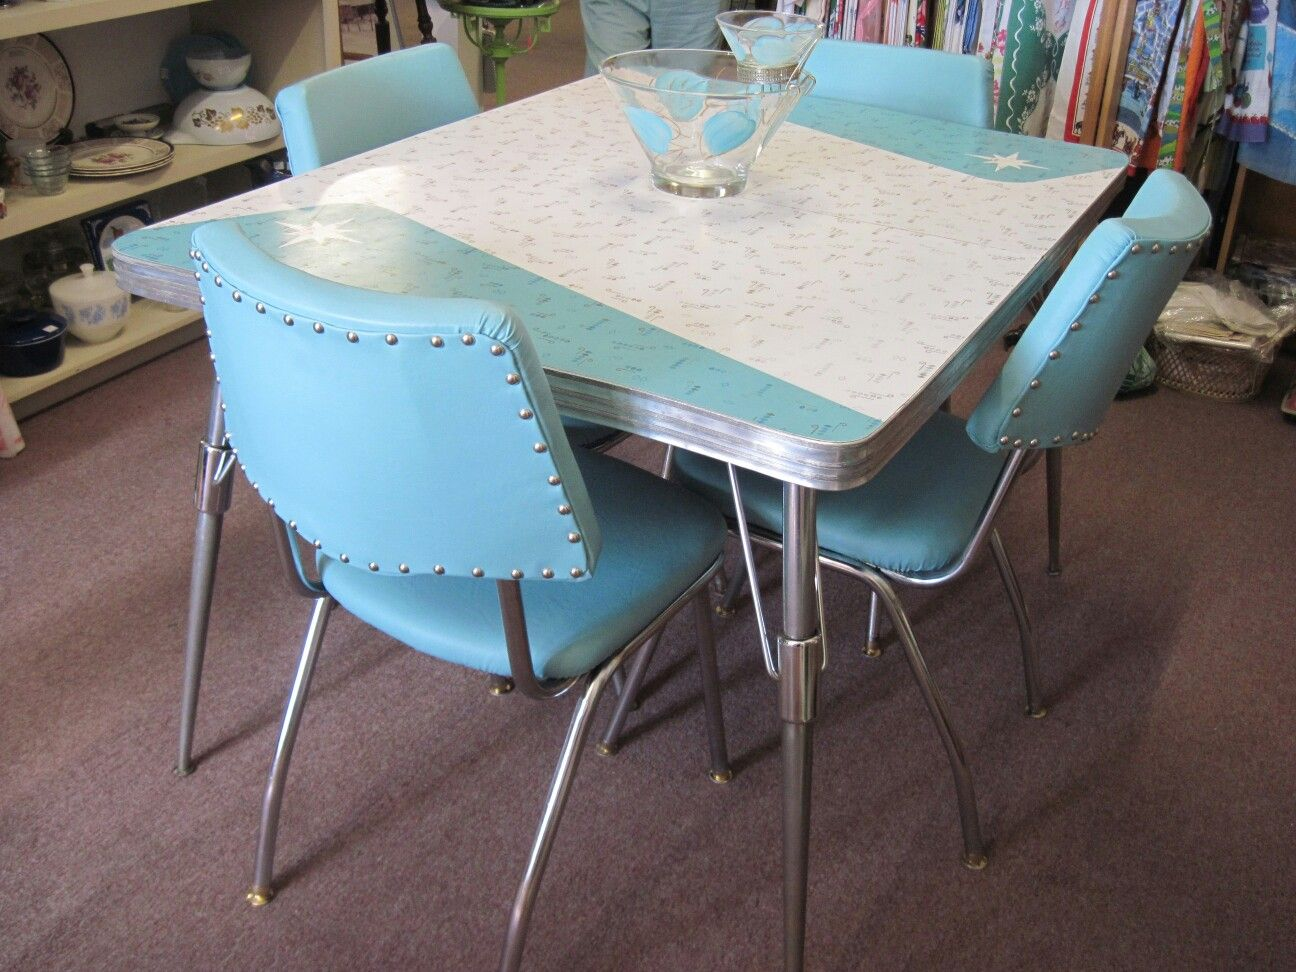 1950s Atomic Blue Teal White Starburst Kitchen Dining Table Retro